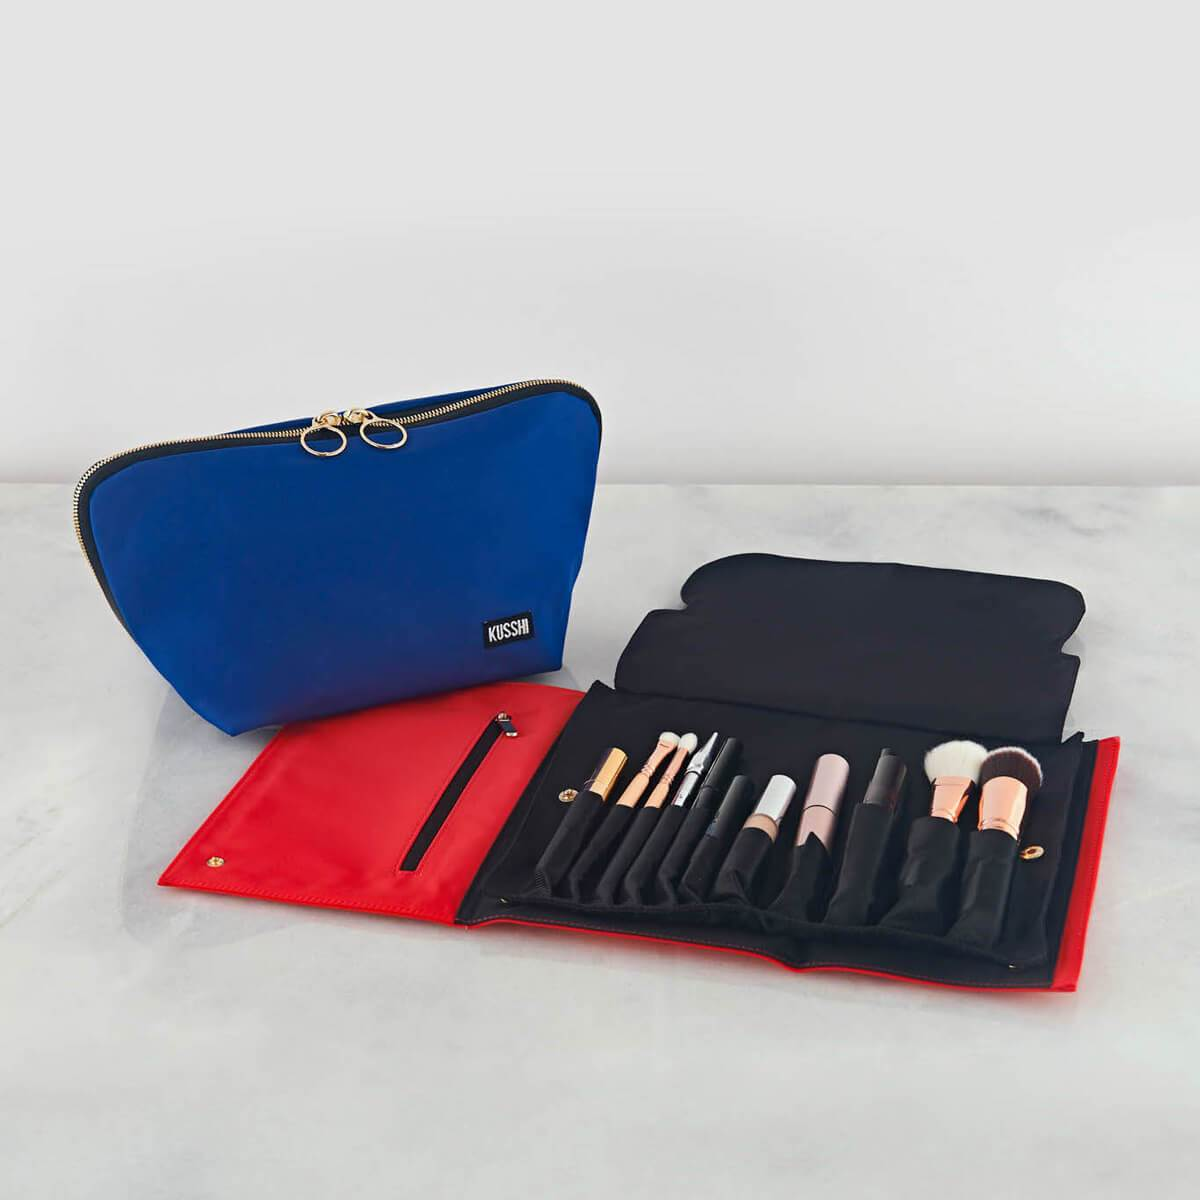 color: Luxurious Black Leather with Red Interior+Candy Apple Red Fabric; alt: Signature Medium Makeup Bag | KUSSHI